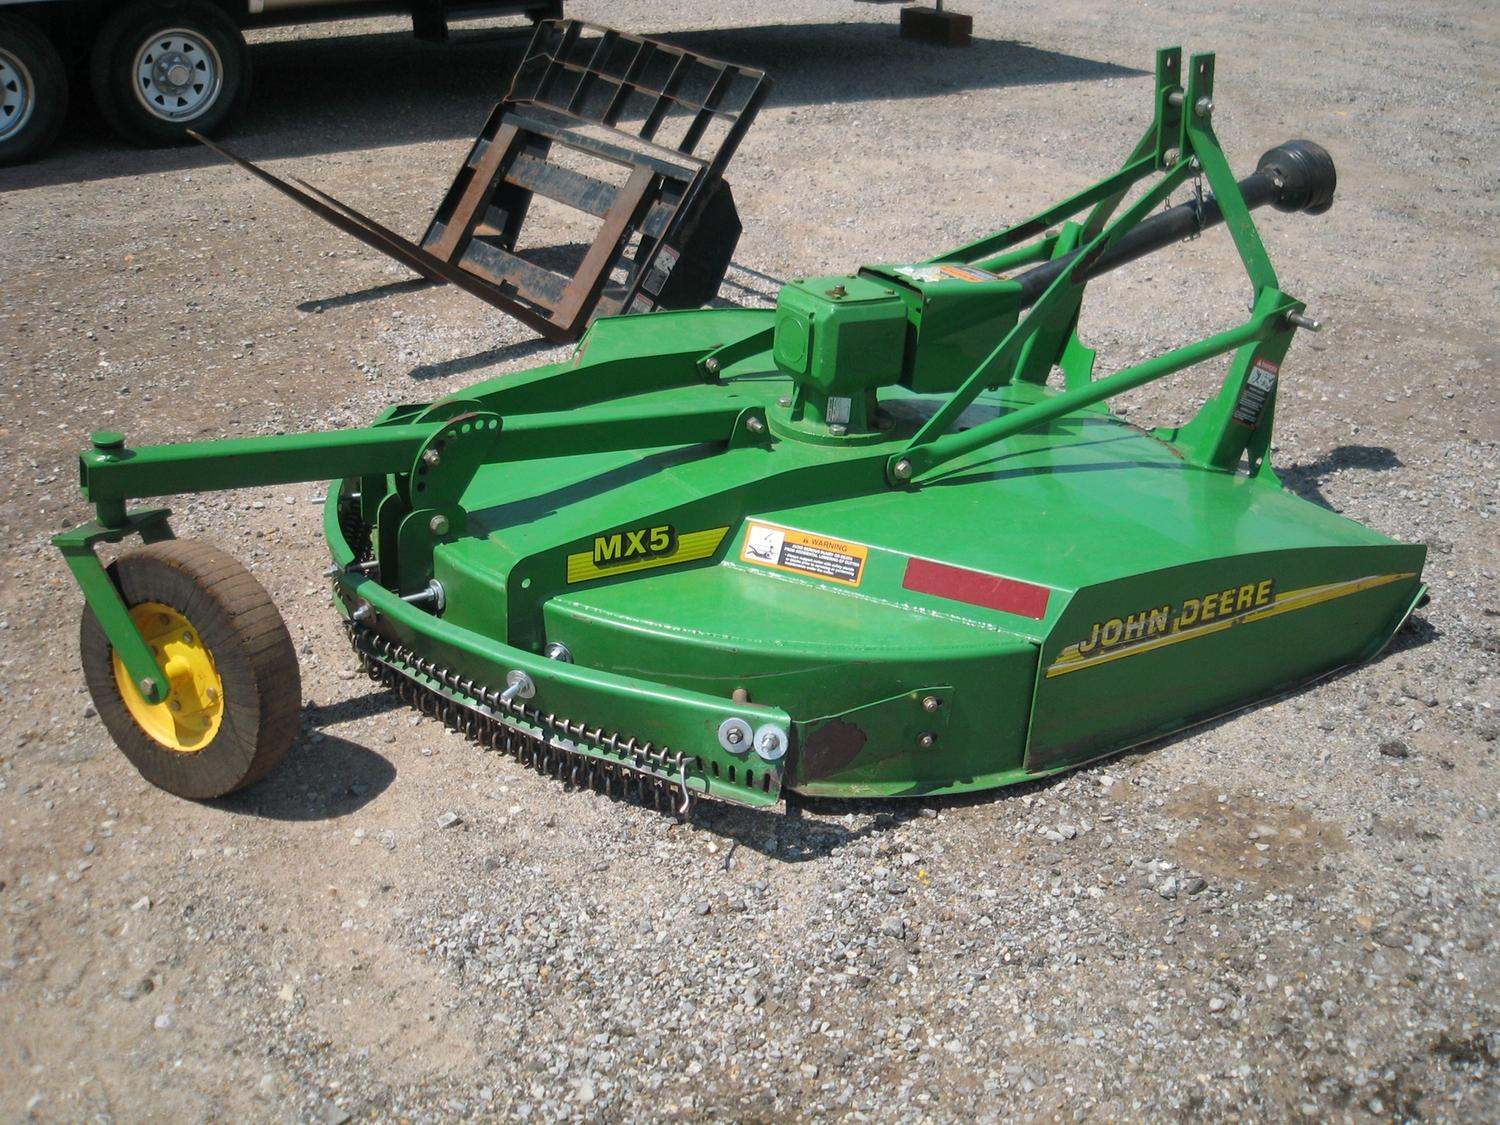 John Deere Mx5 5 Brush Hog